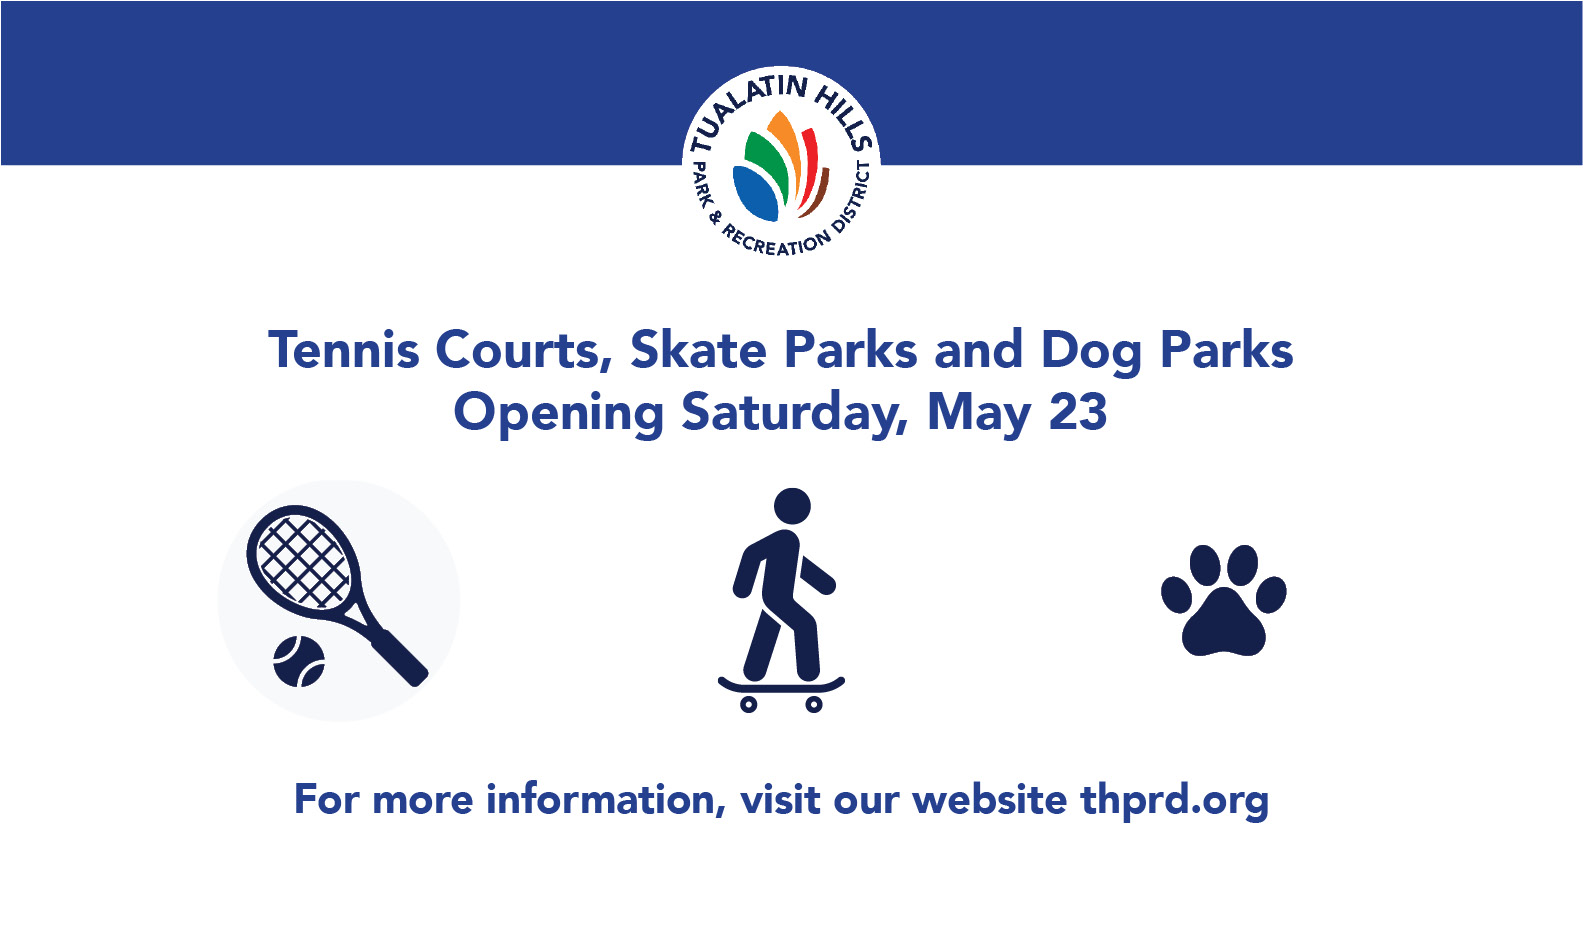 Outdoor Amenities - Re-opening for use on 5/23